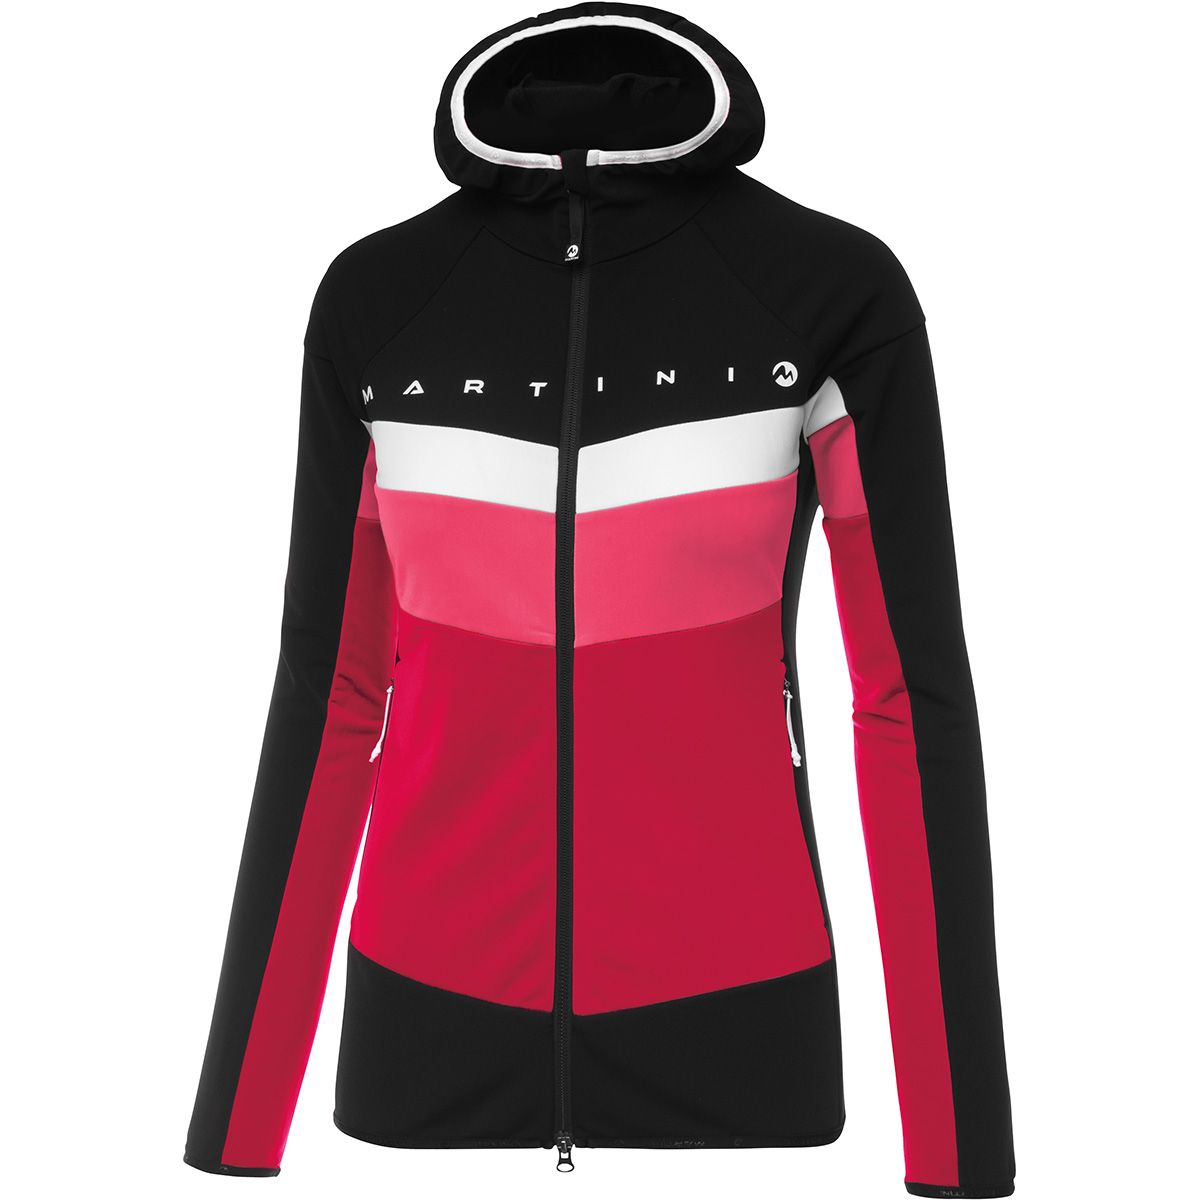 Martini Damen Independent Jacke (Größe XL, Pink) | Softshelljacken > Damen